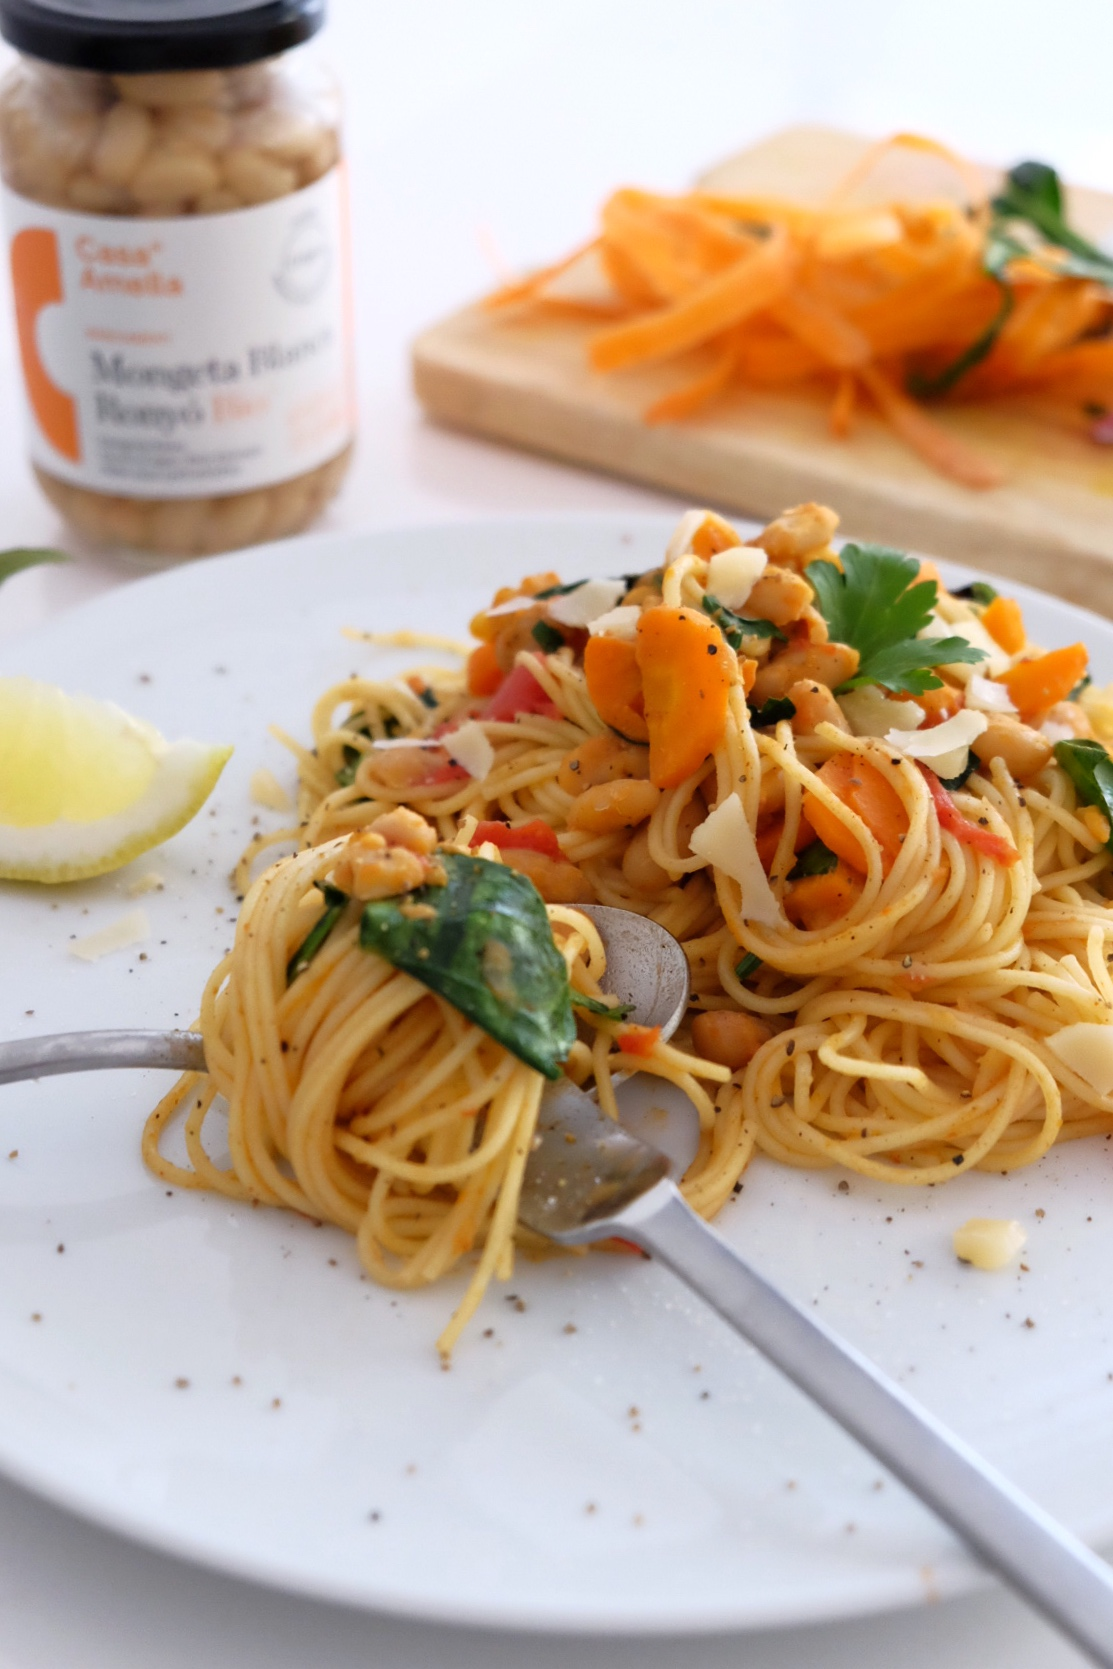 Spaghetti with white beans, carrots and spinach